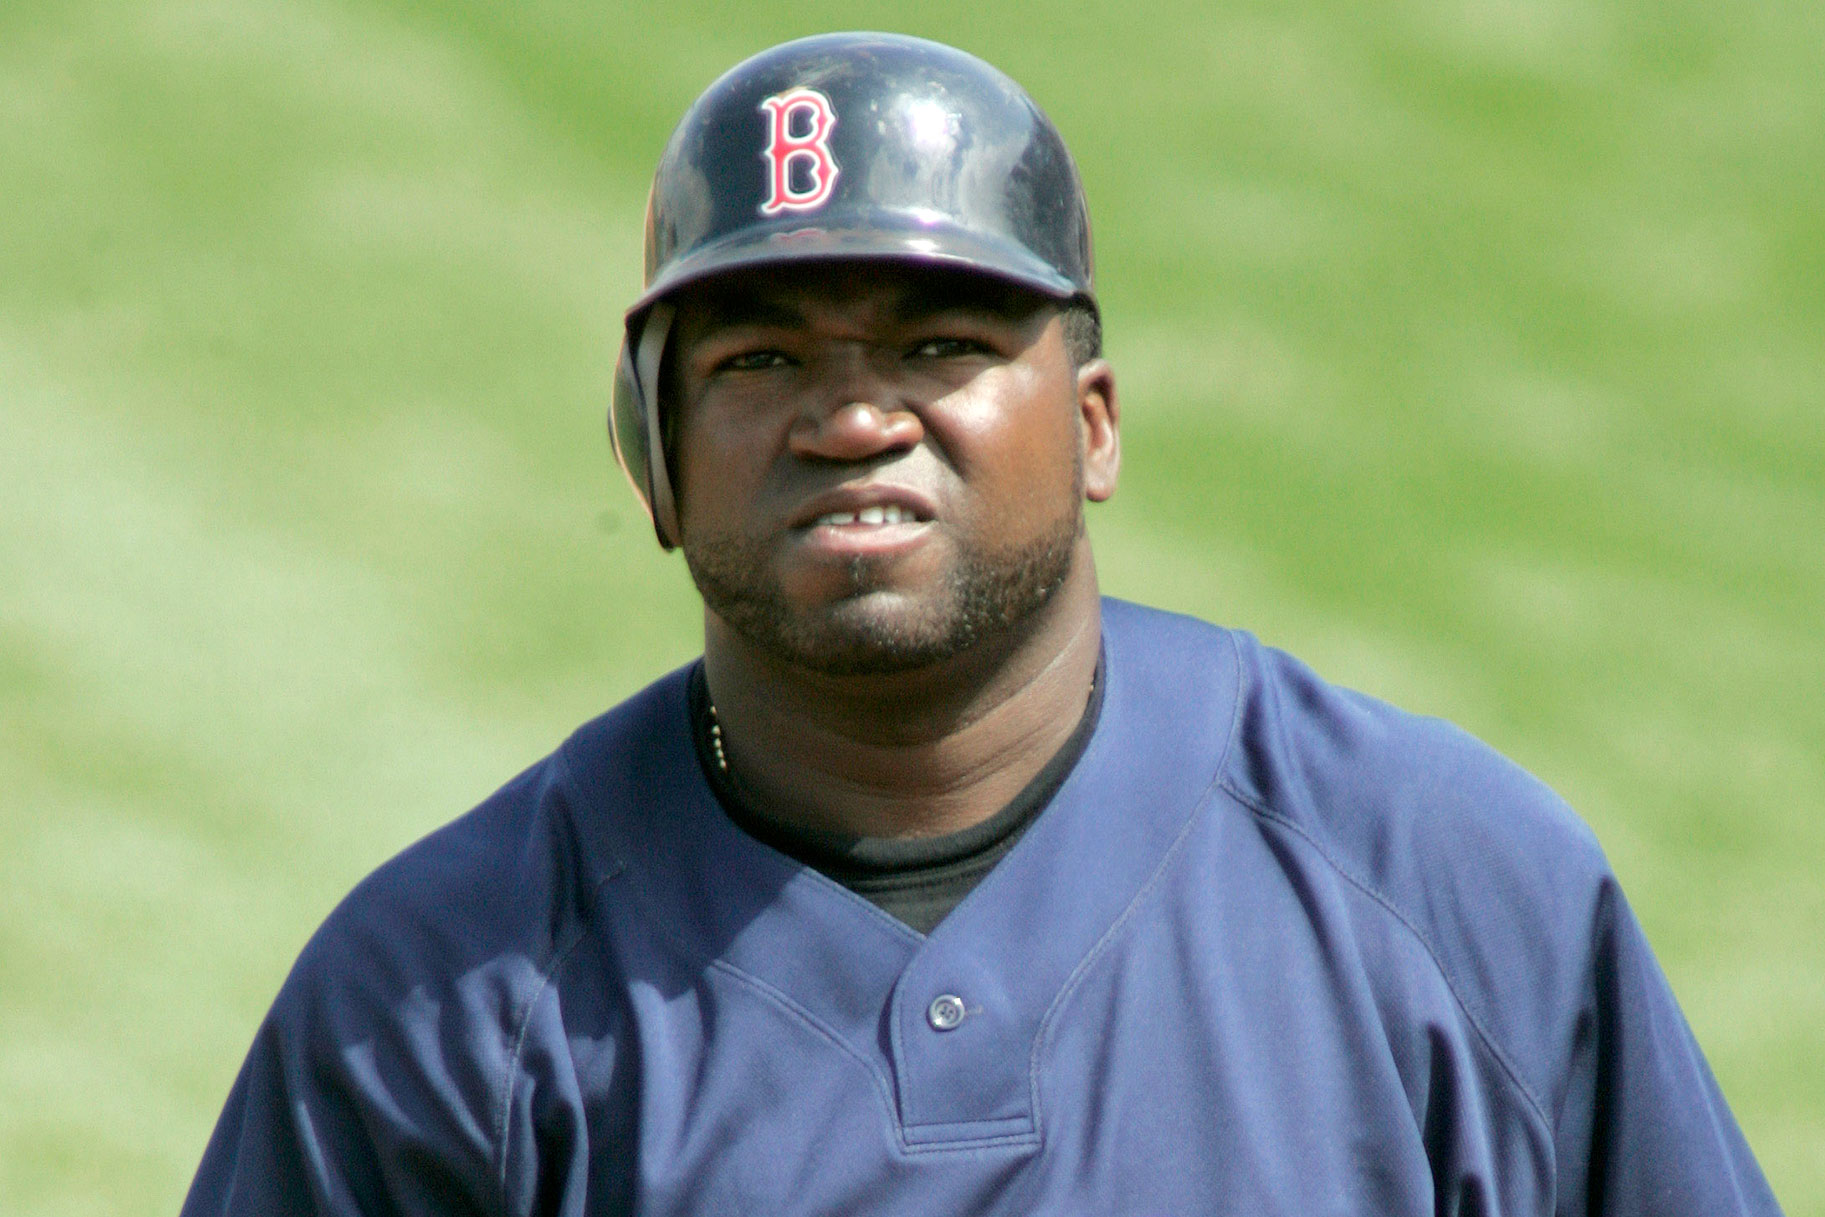 249aa7e7 I'm A Good Man,' Boston Red Sox Icon David Ortiz Reportedly Tells Doctors After  Being Shot